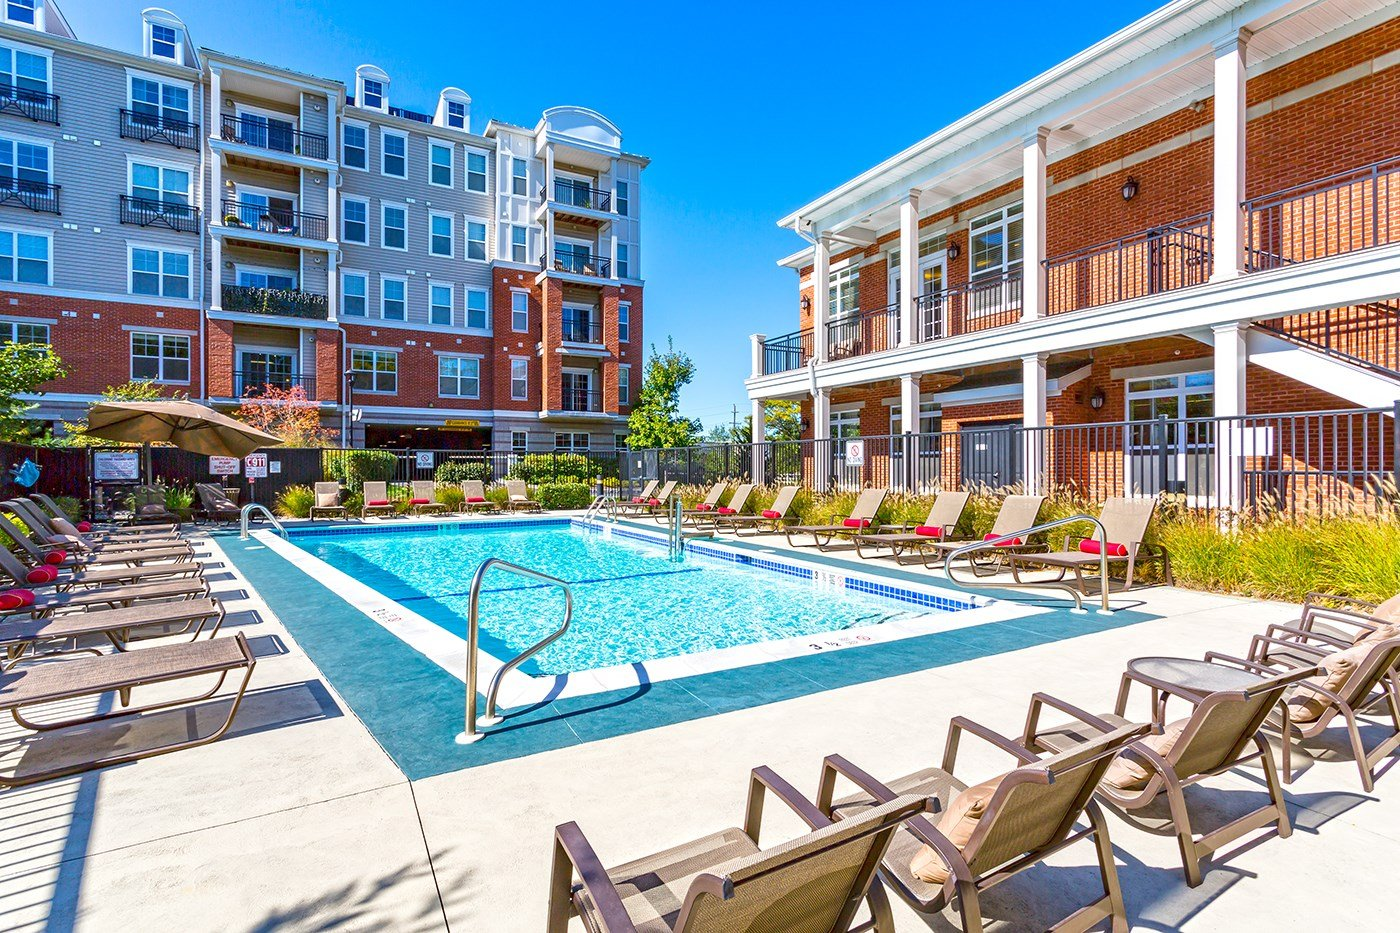 Swimming Pool at The Reserve at Riverdale Apartments in Riverdale, NJ